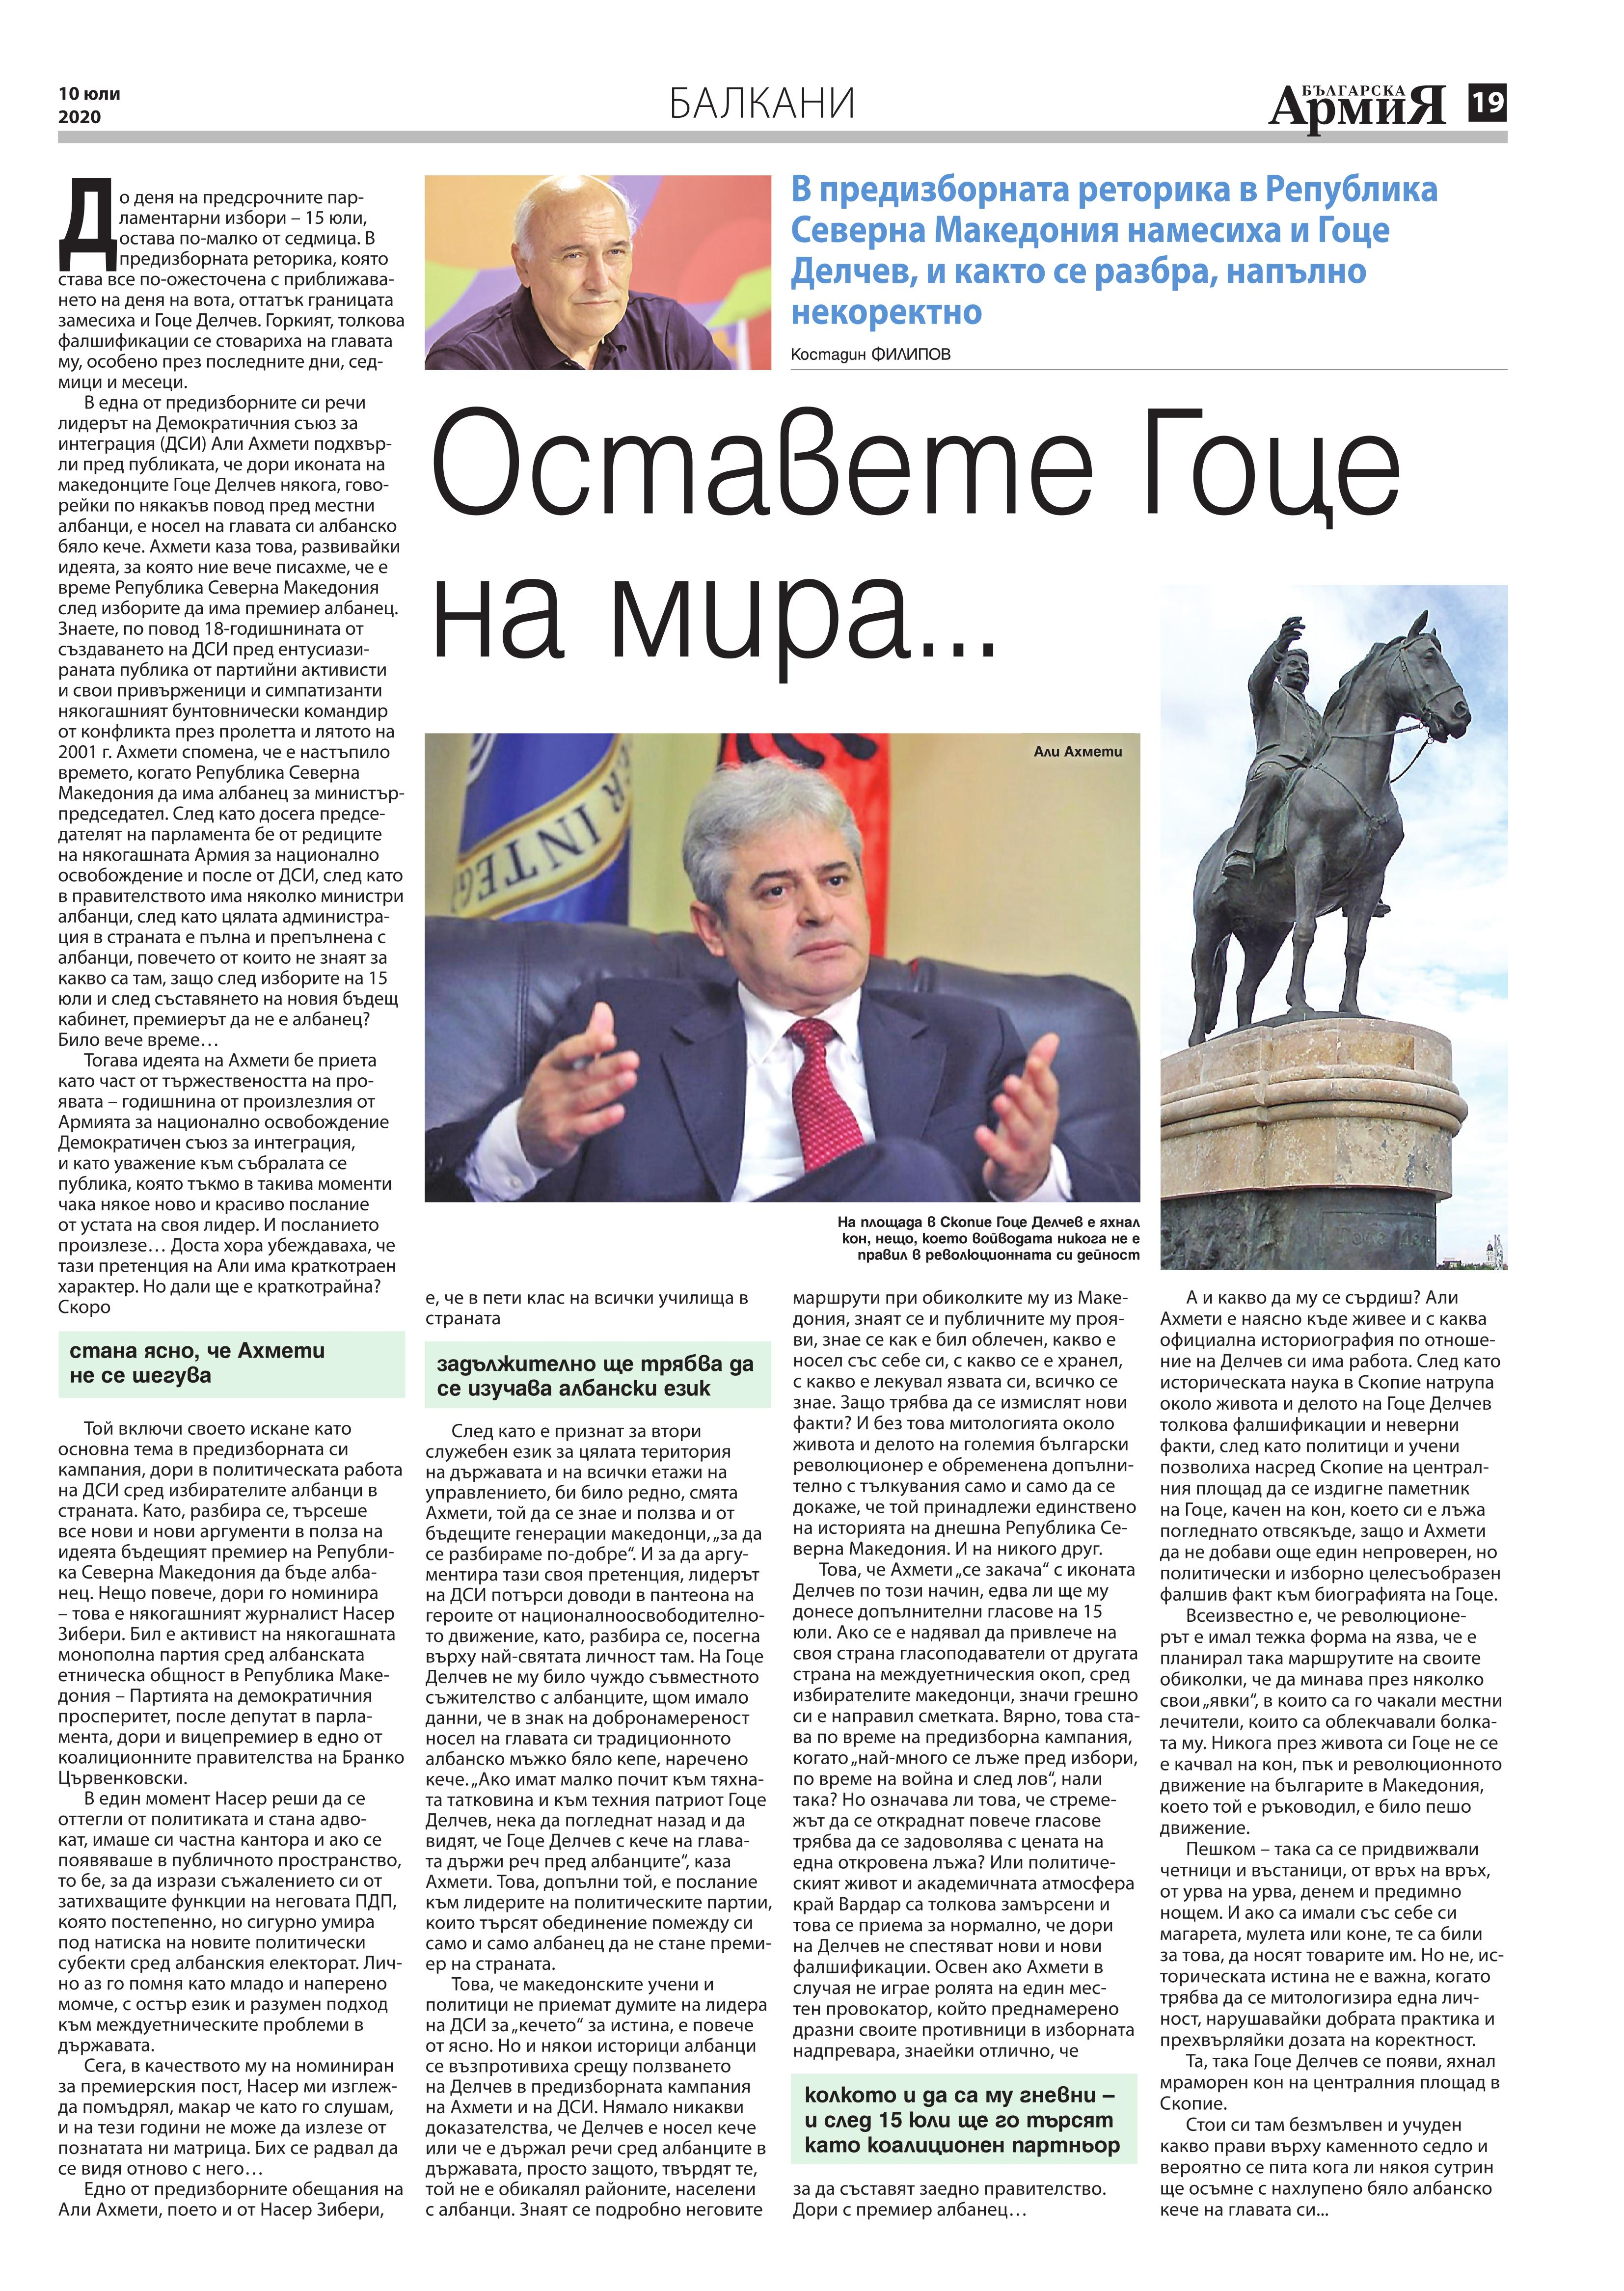 https://armymedia.bg/wp-content/uploads/2015/06/19.page1_-147.jpg